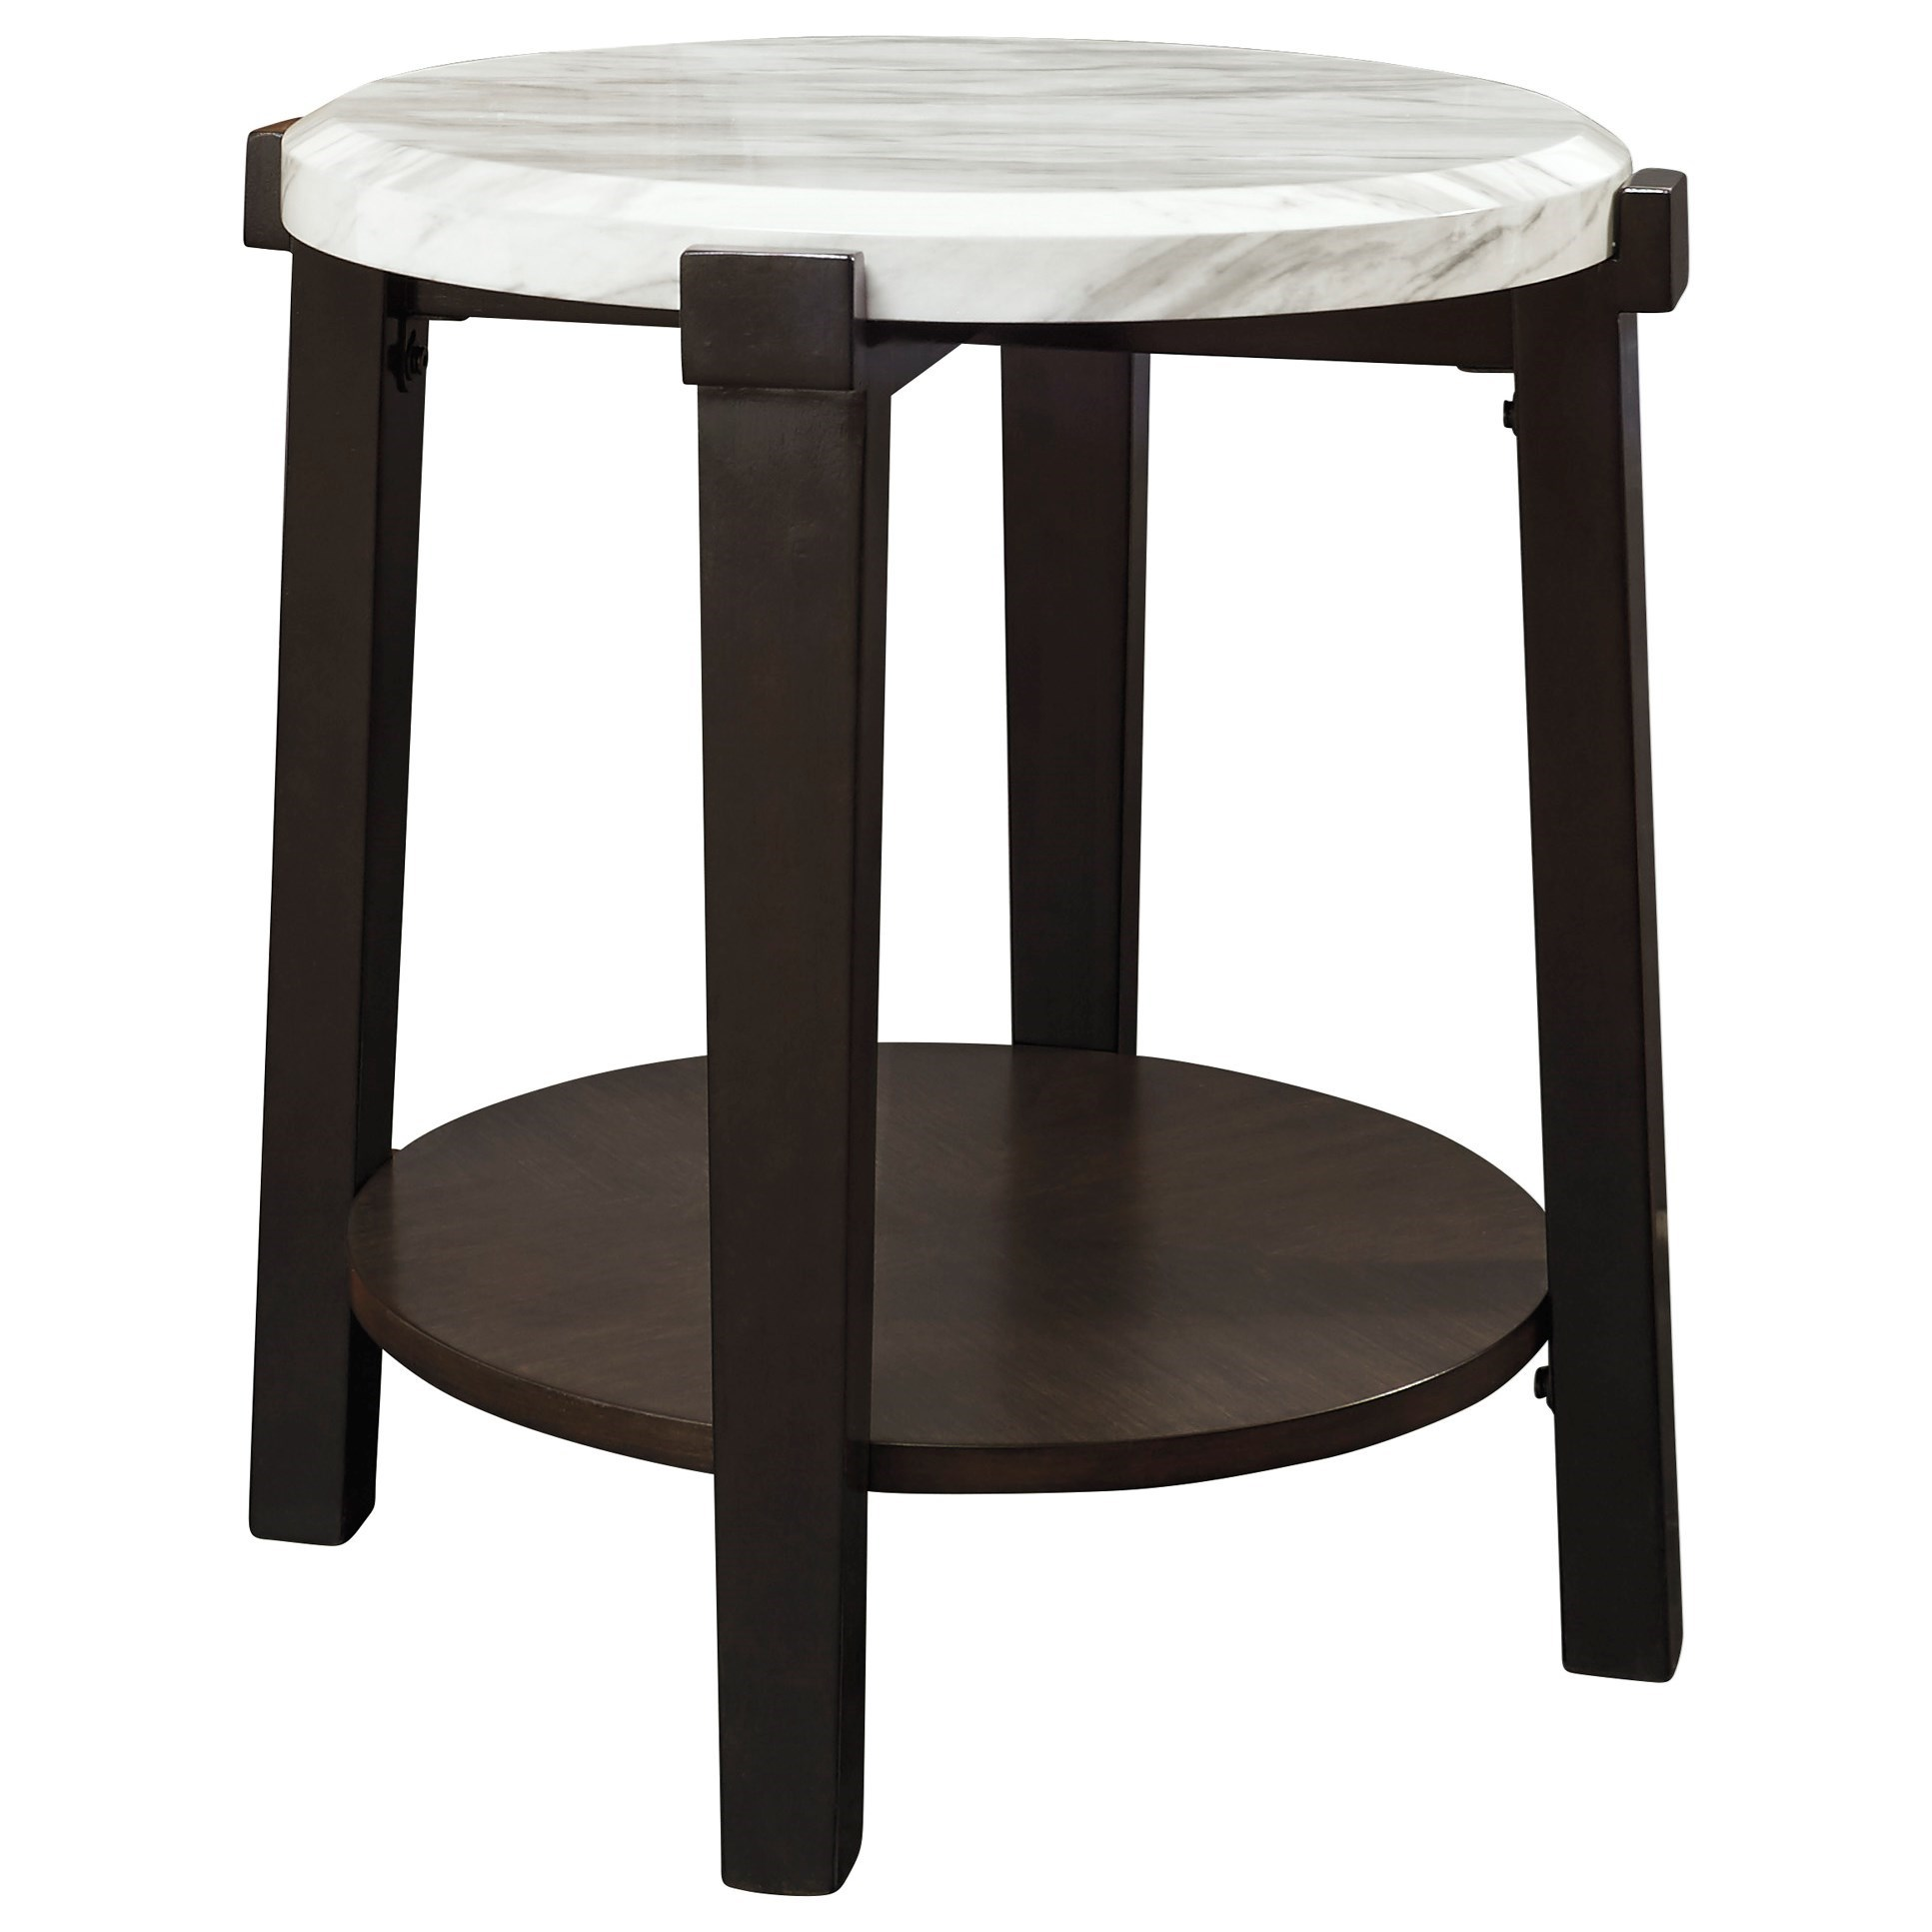 Janilly Round End Table by Signature Design by Ashley at Northeast Factory Direct